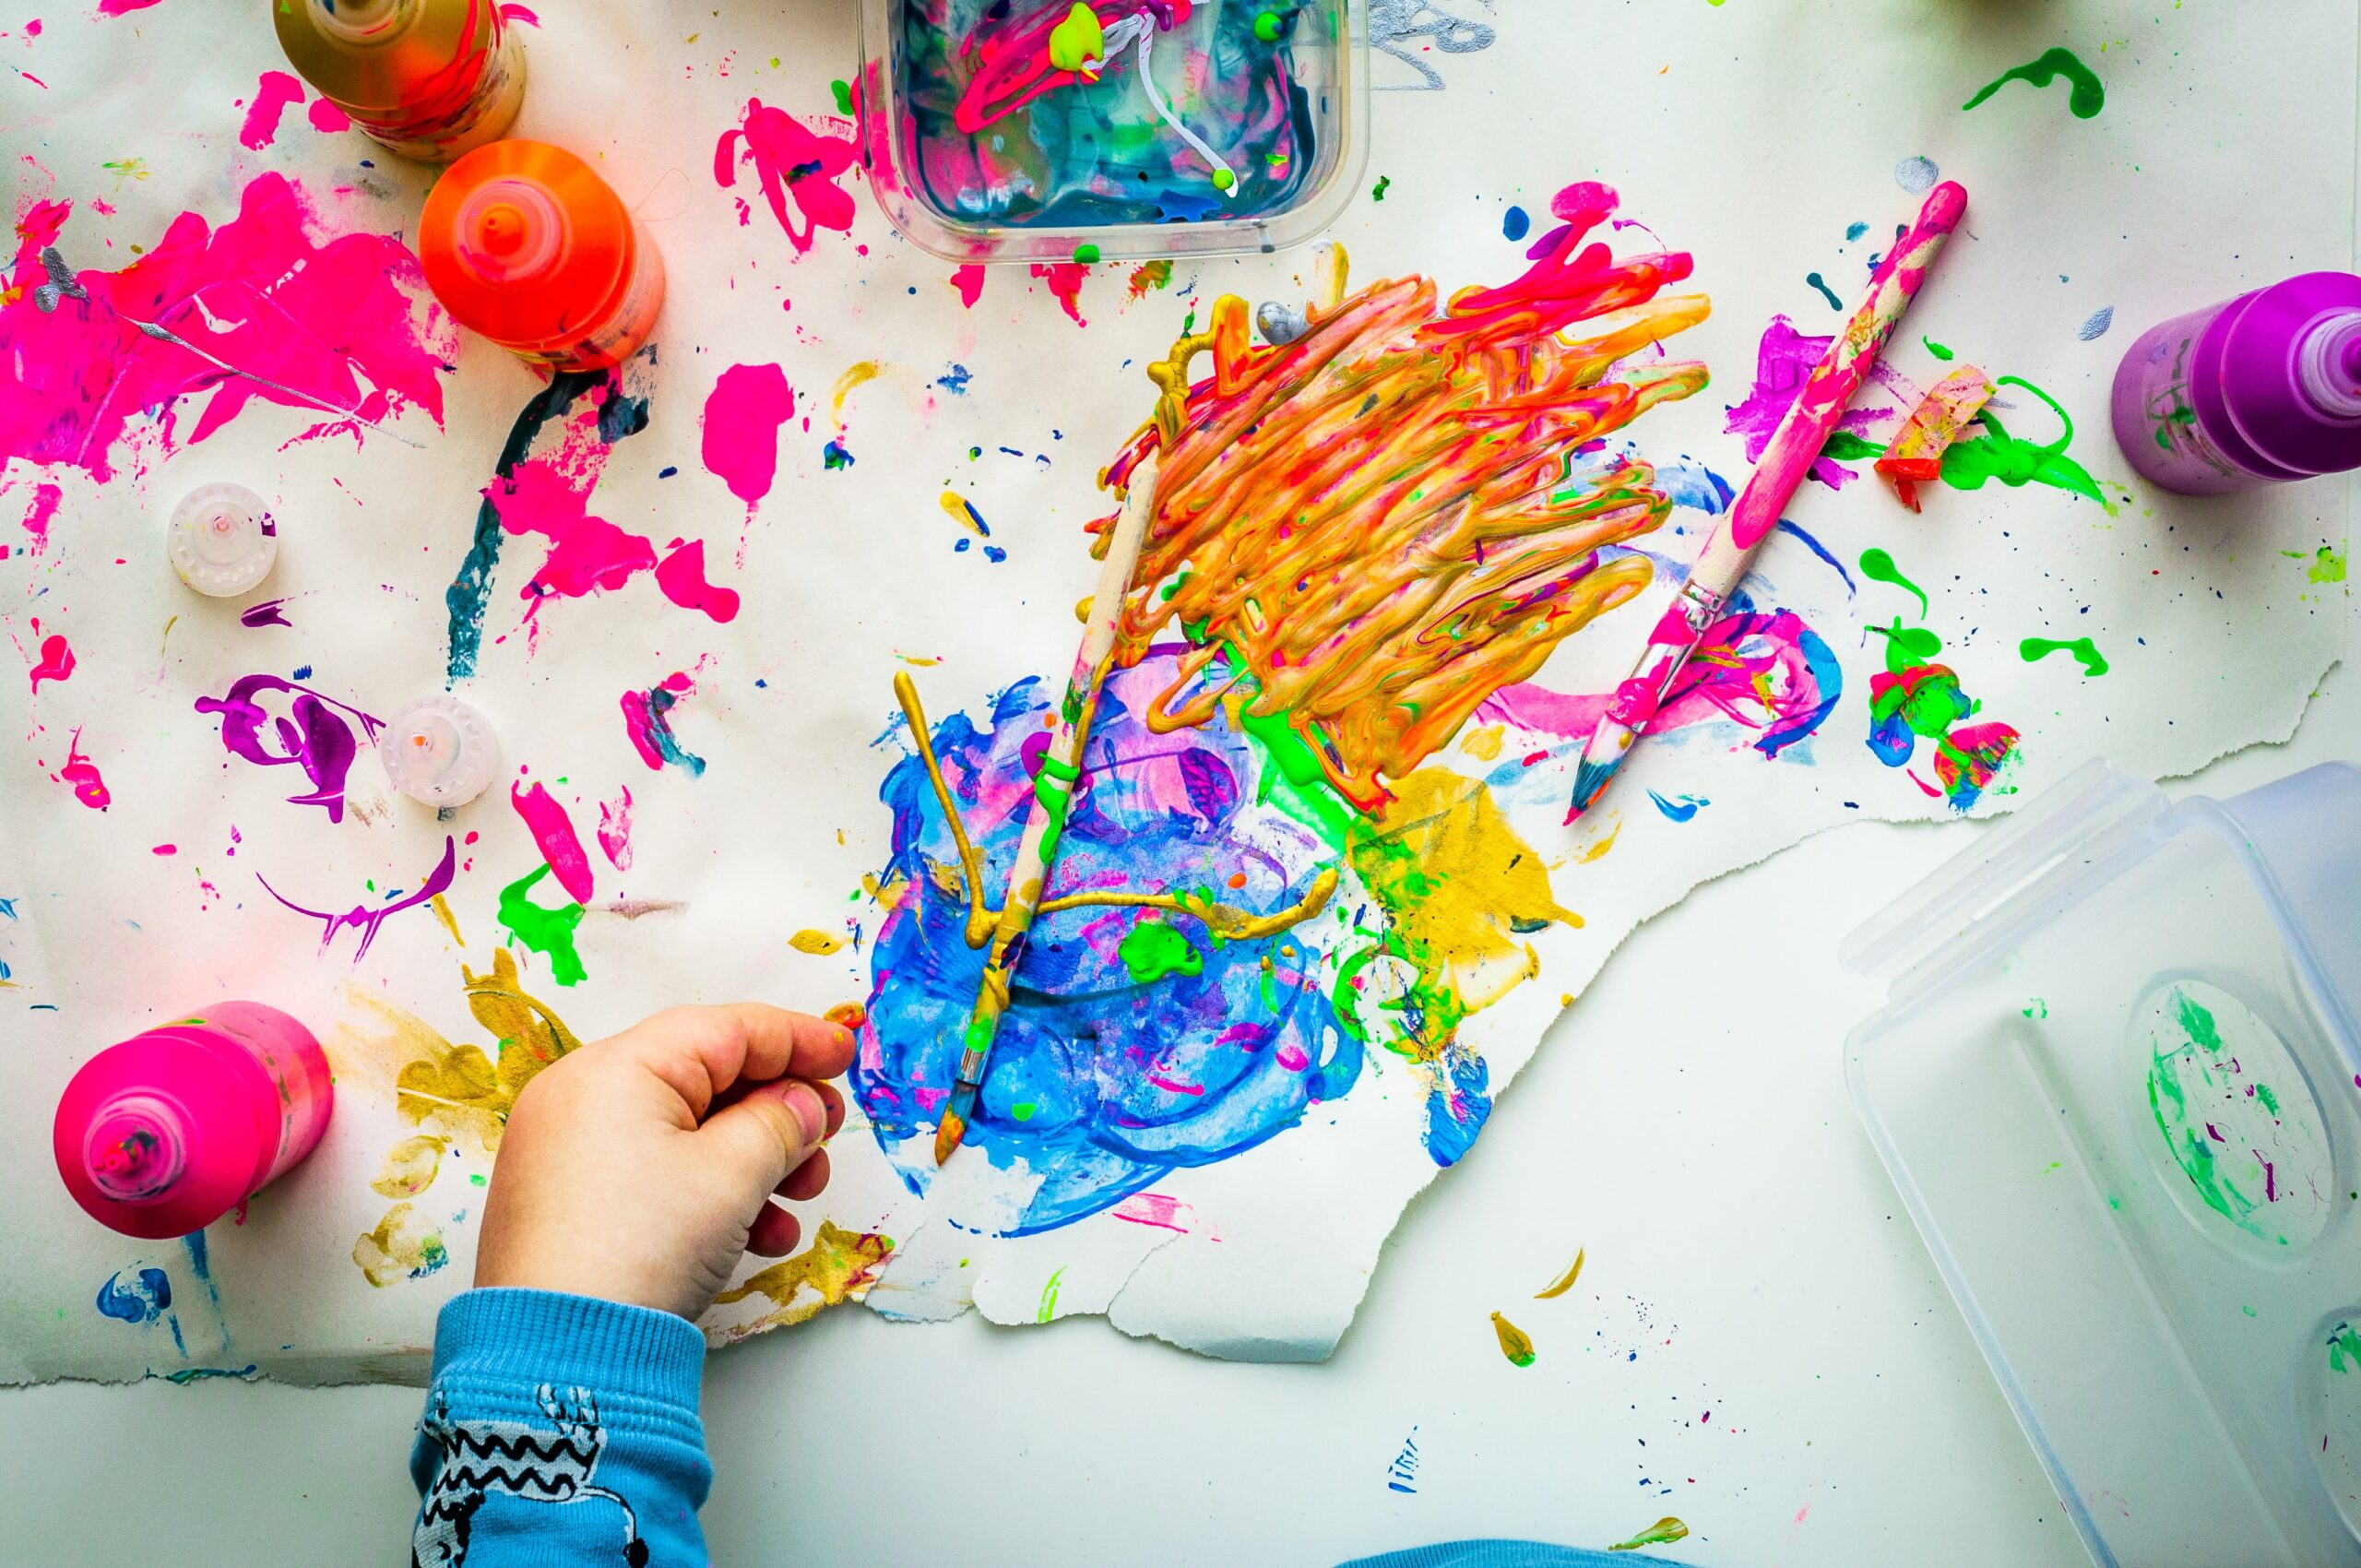 The Importance of Having a Creative Outlet